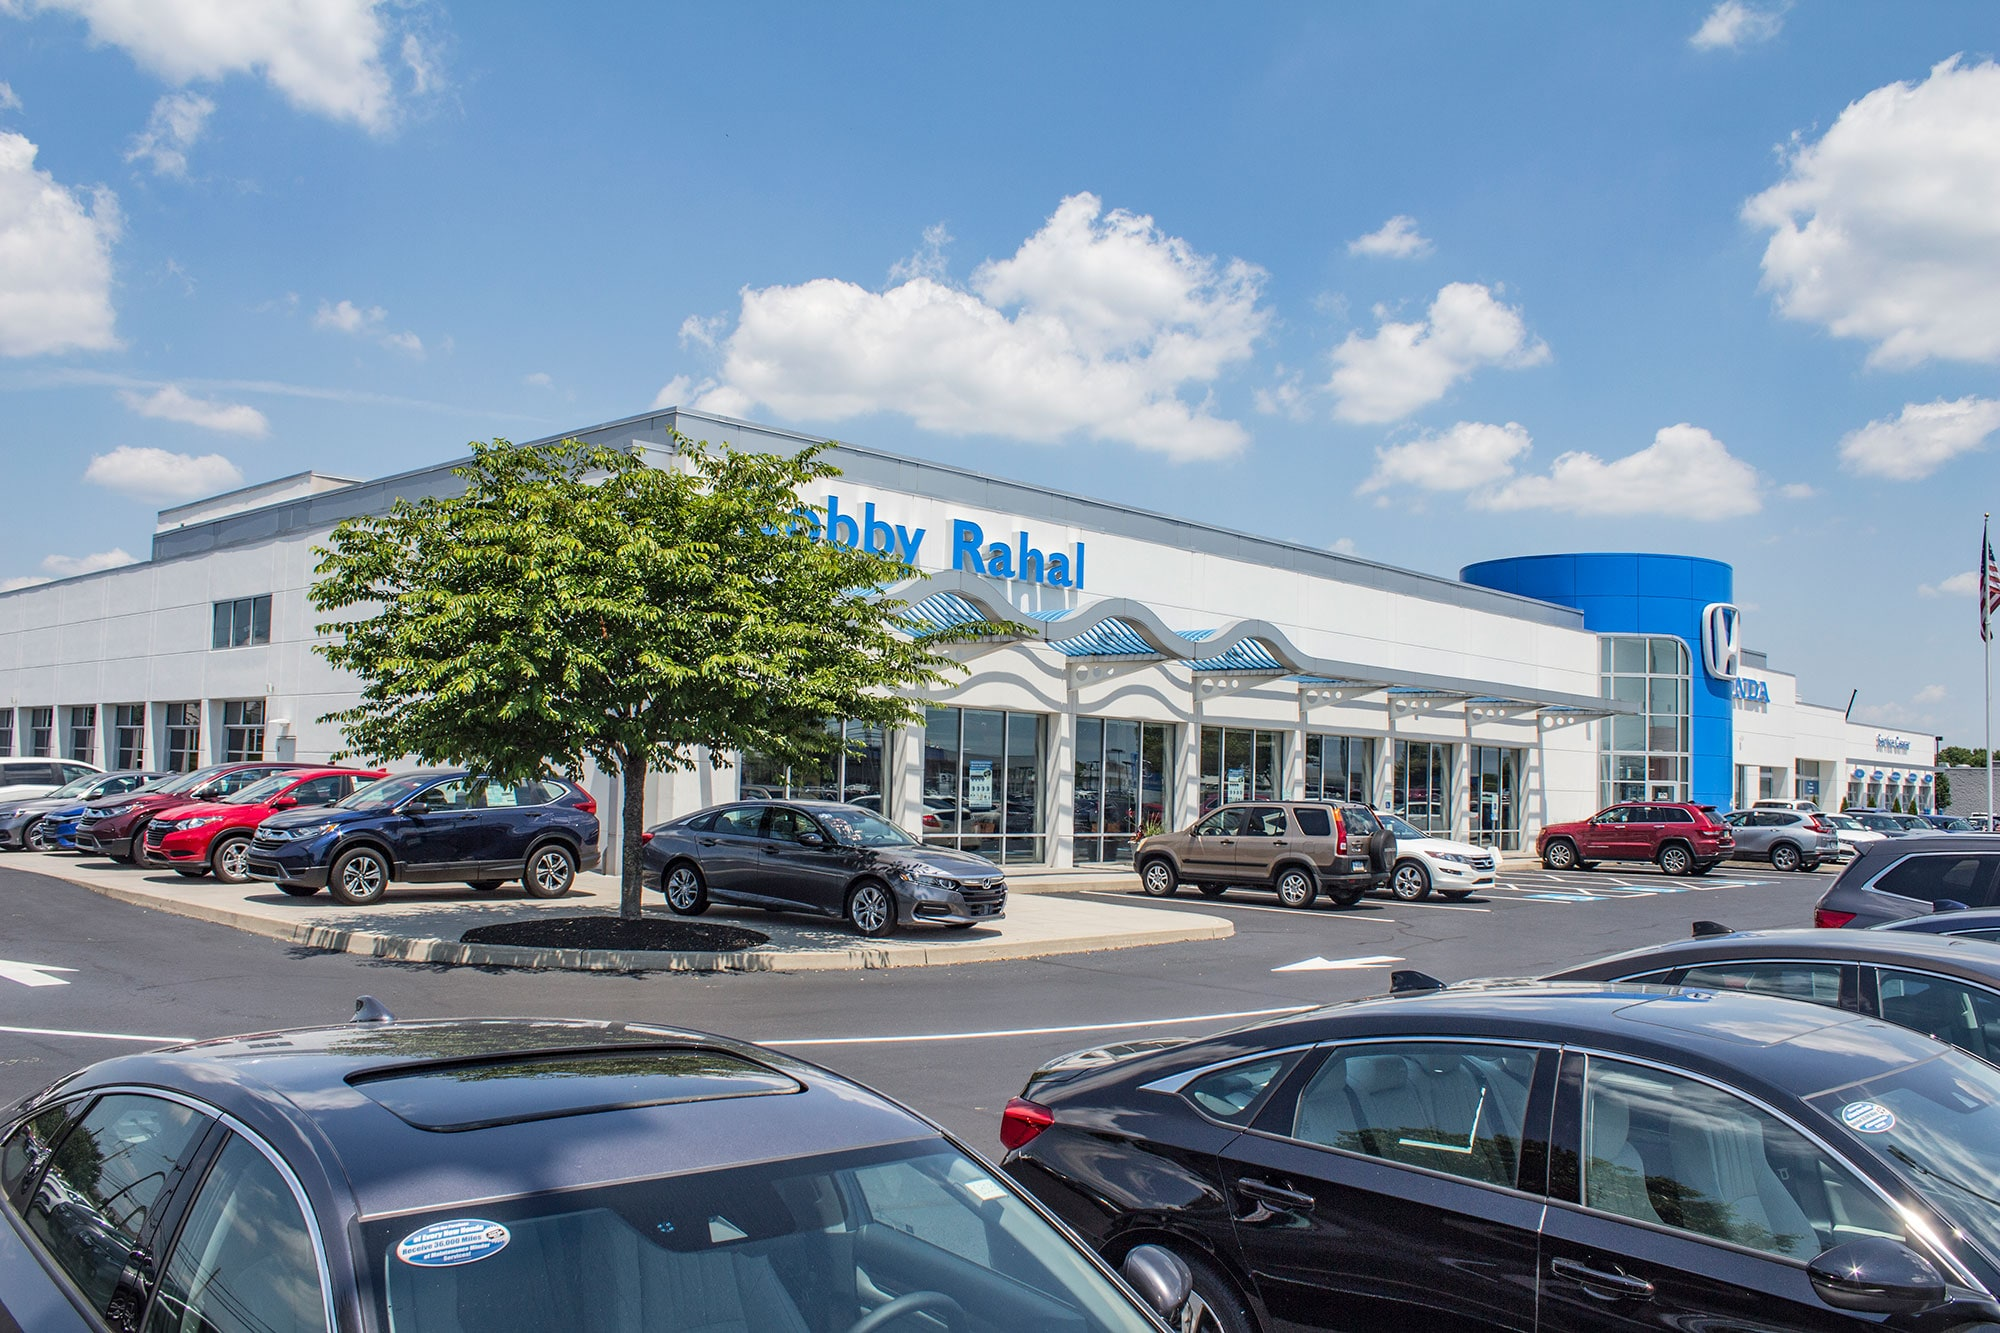 Bobby Rahal Honda New and Used Car Dealer and Service Department